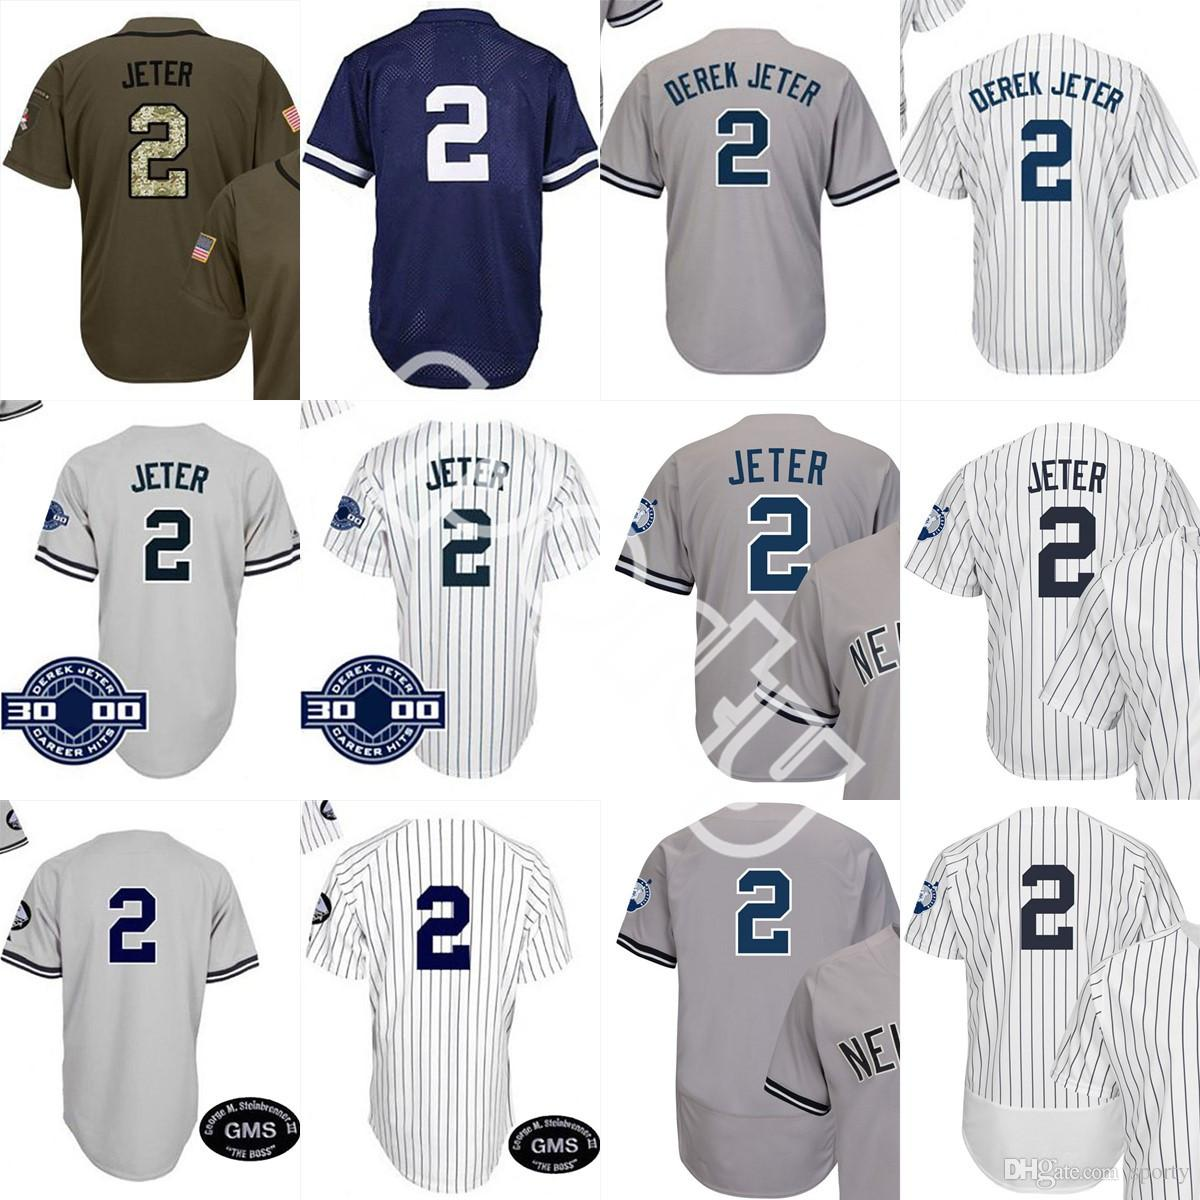 2019 Men White Grey Navy 2 Jeter Captain Jersey Retirement 3000 Hits ... 32a32b4e233